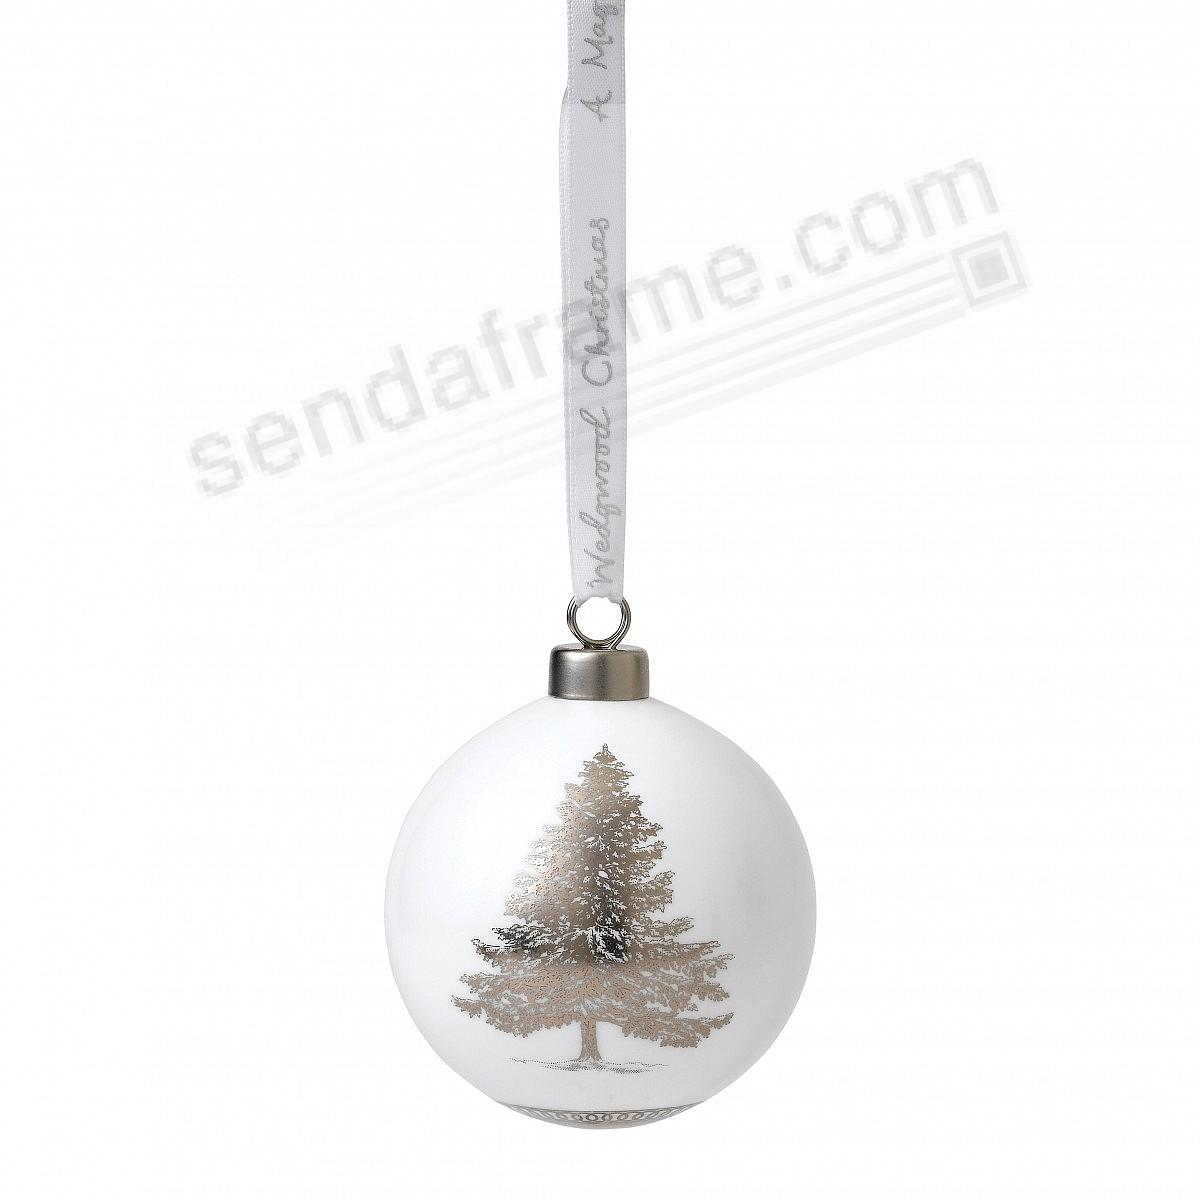 2018 CHRISTMAS TREE Ornament by Wedgwood®